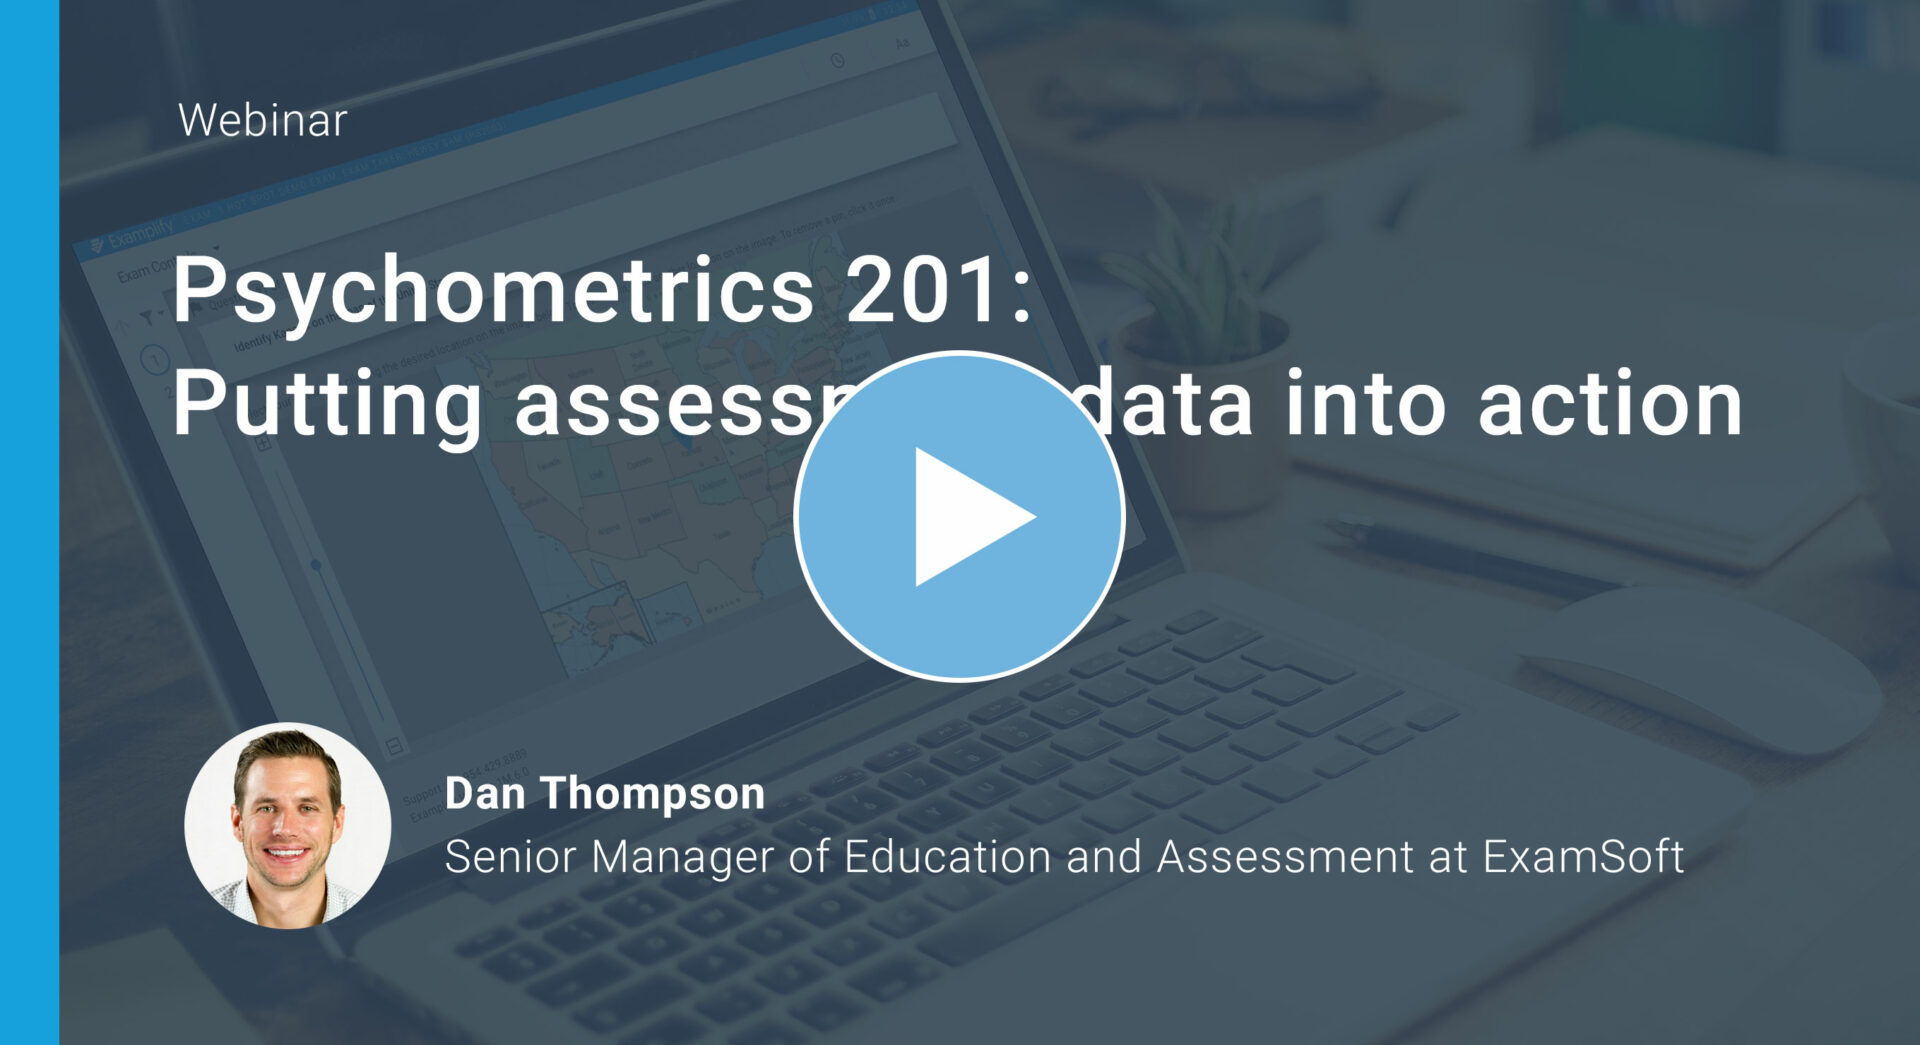 Psychometrics 201: Putting Assessment Data into Action